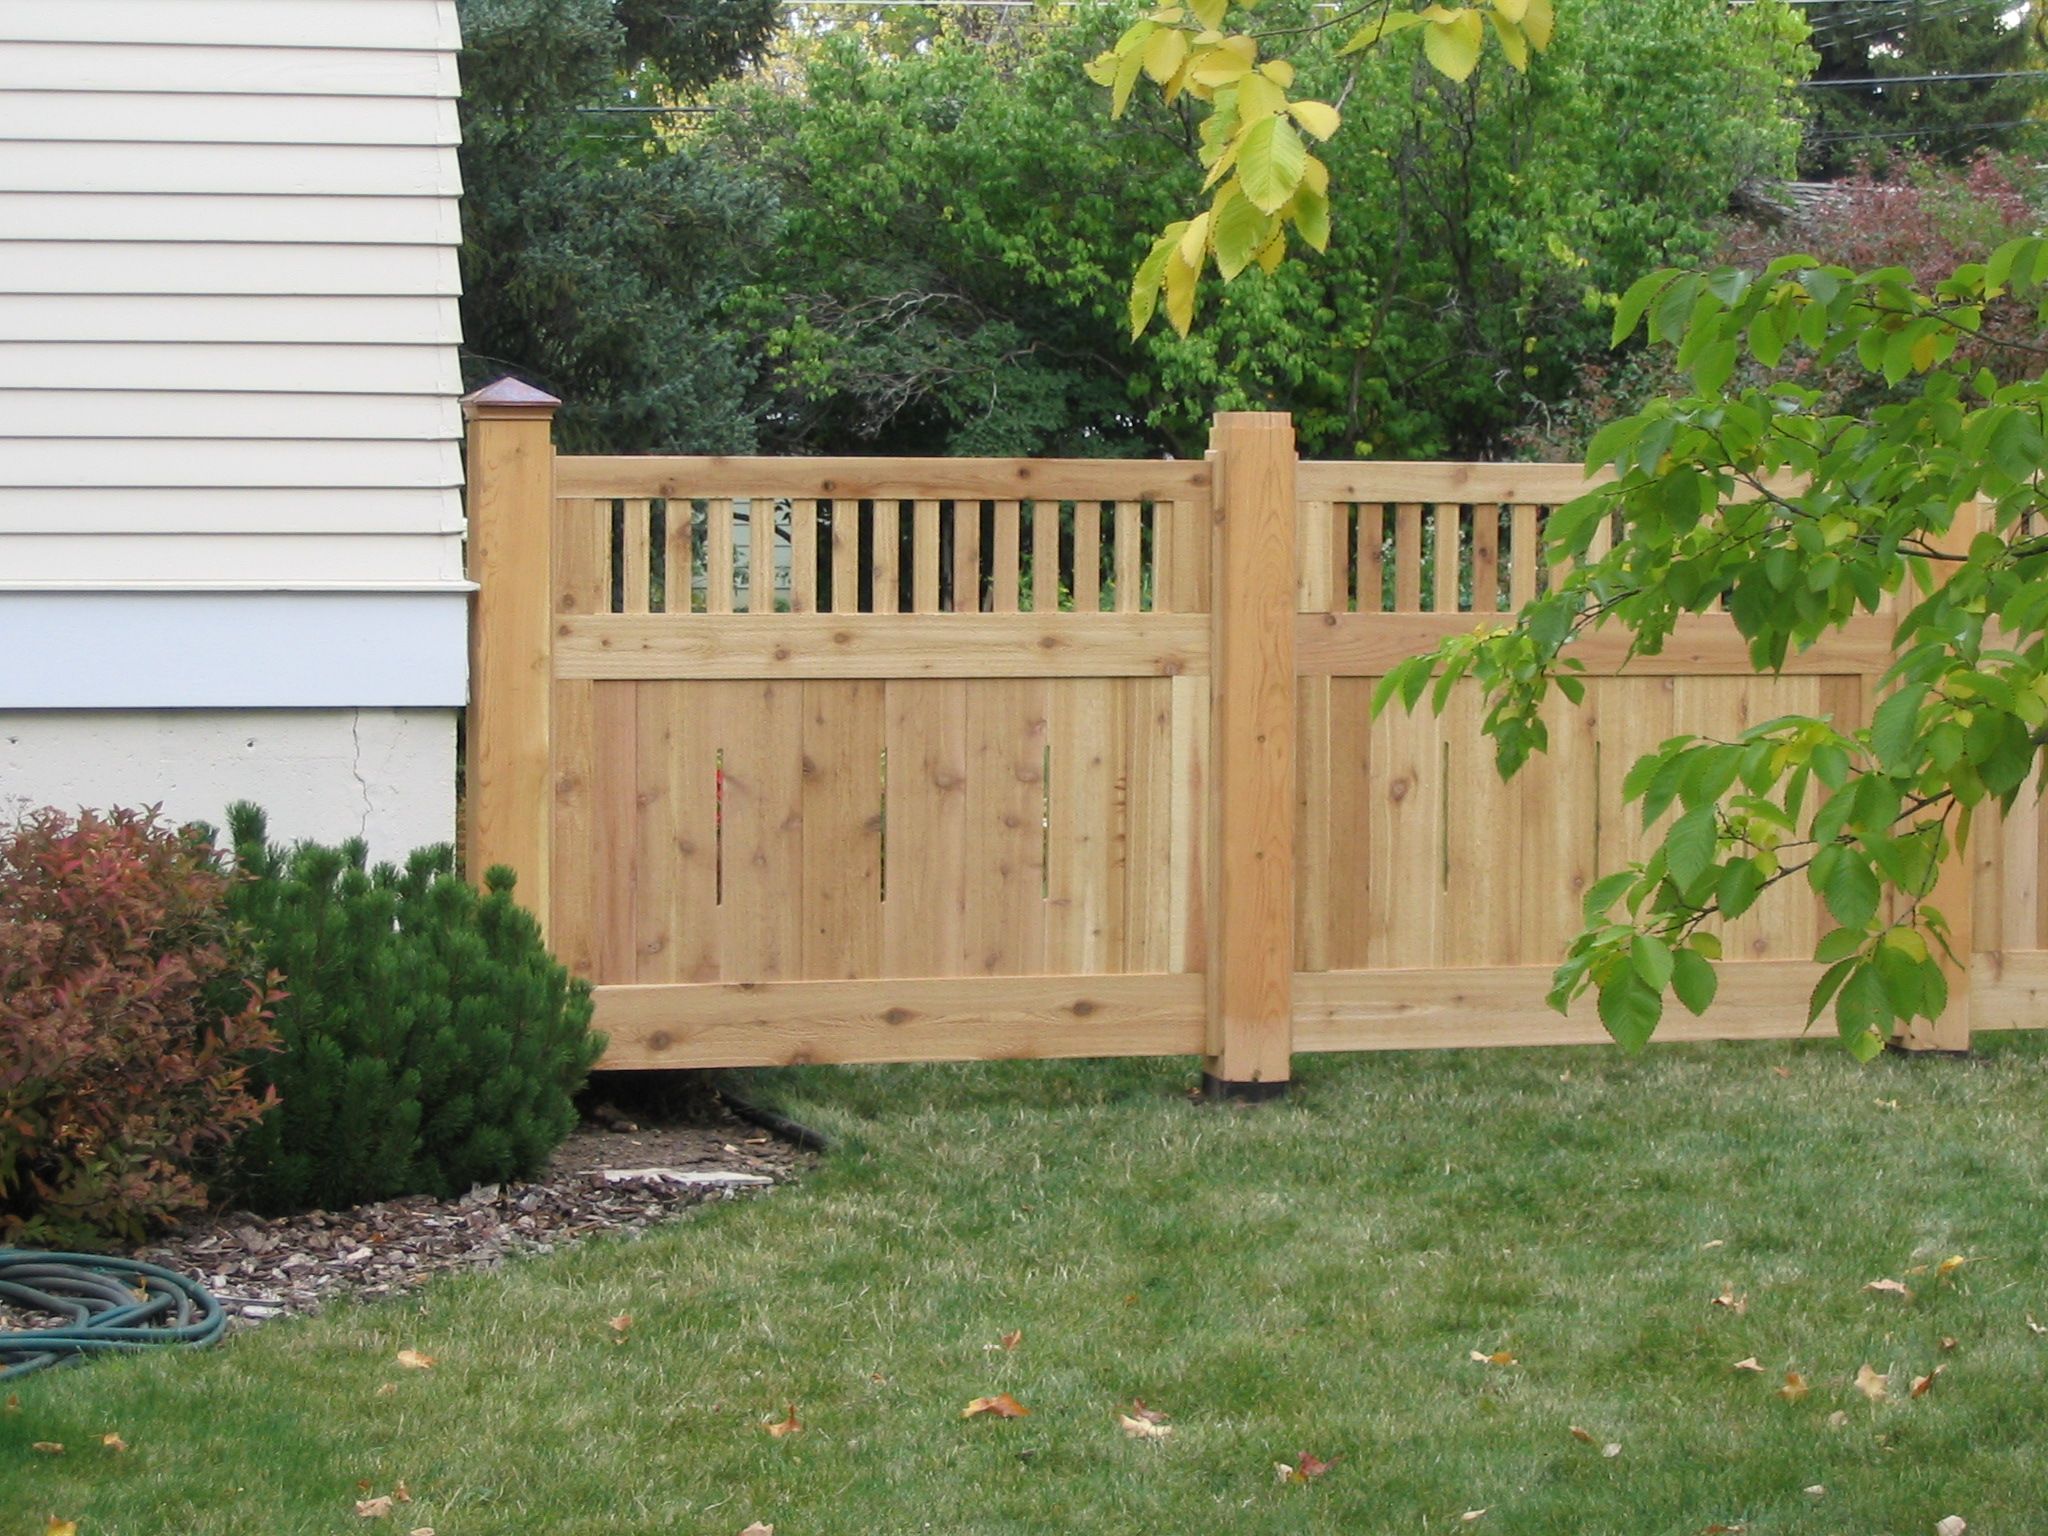 Privacy fence fence ideas pinterest privacy fences for Pool fence screening ideas